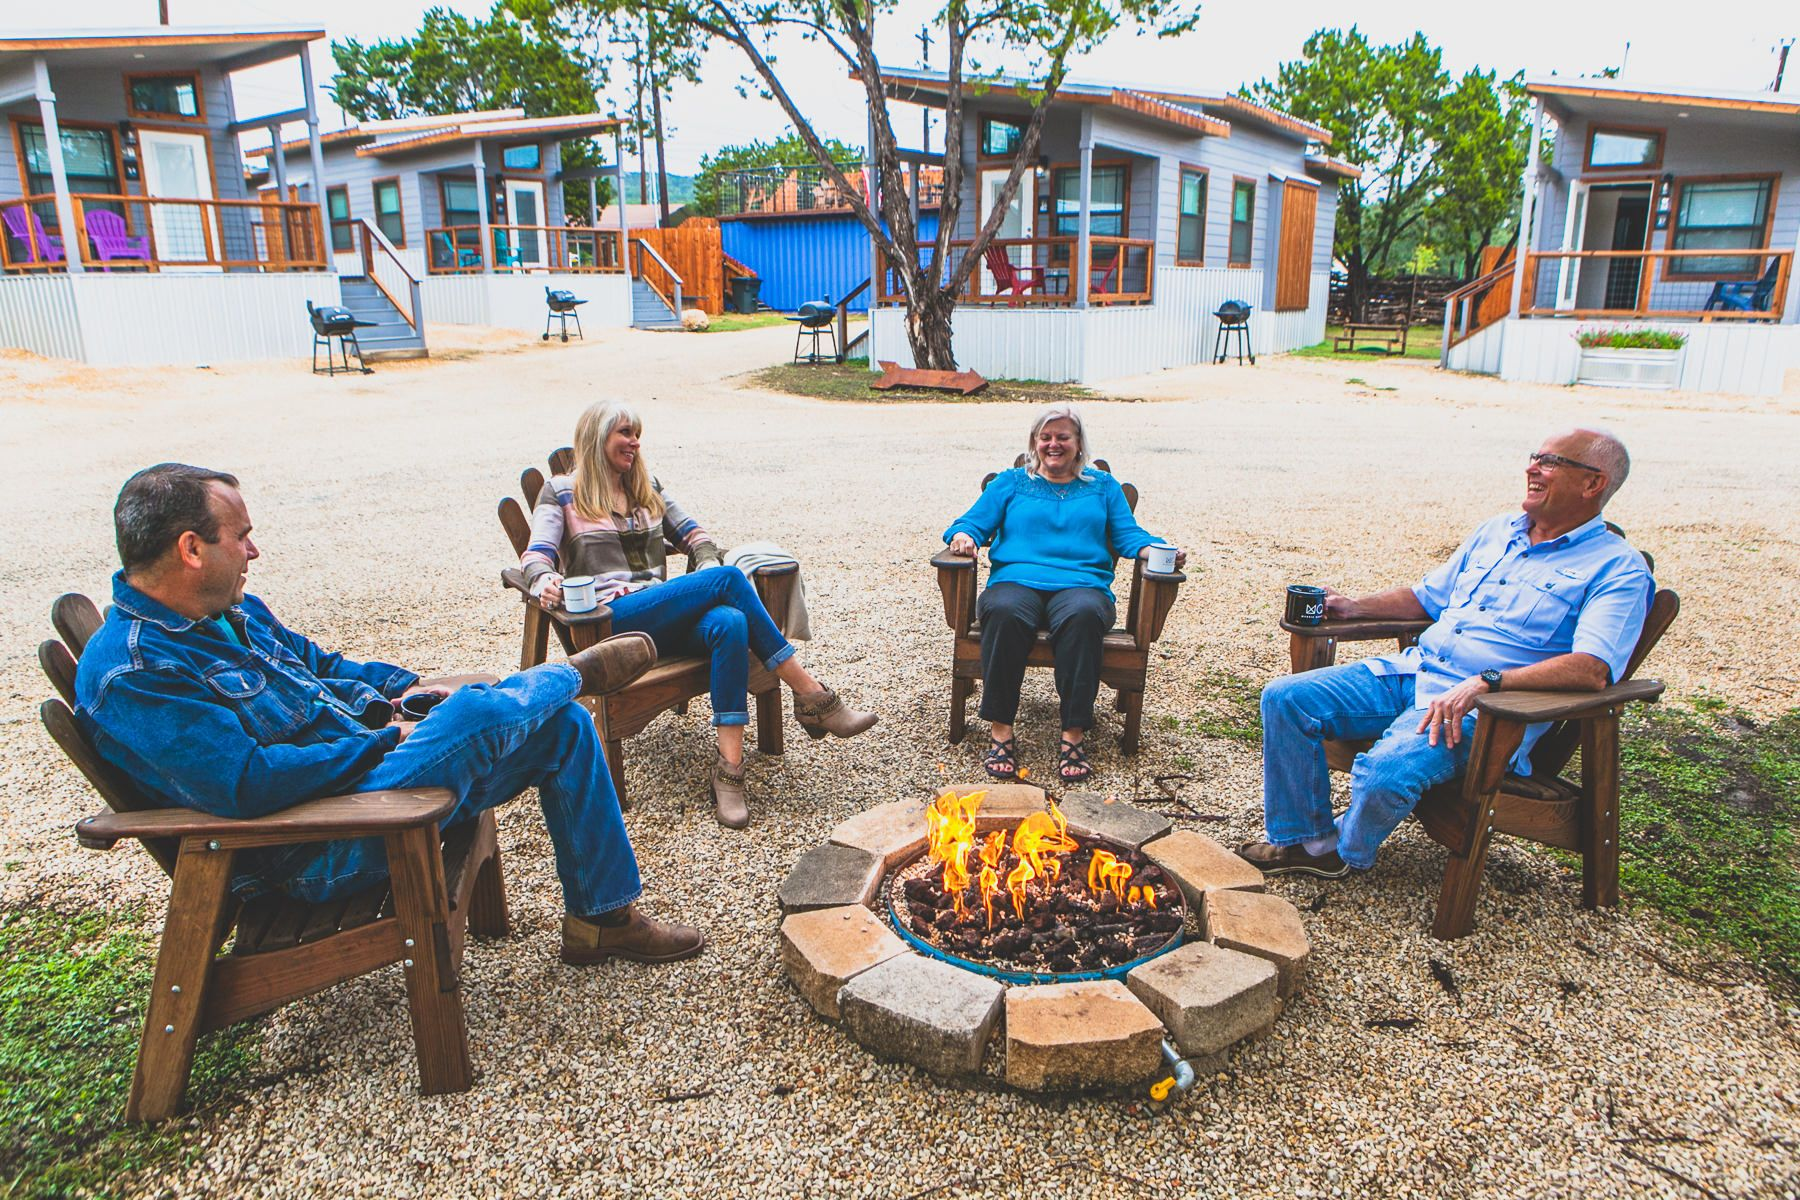 Propane Fire Pit & Good Conversation in Canyon Lake with Friends and Family